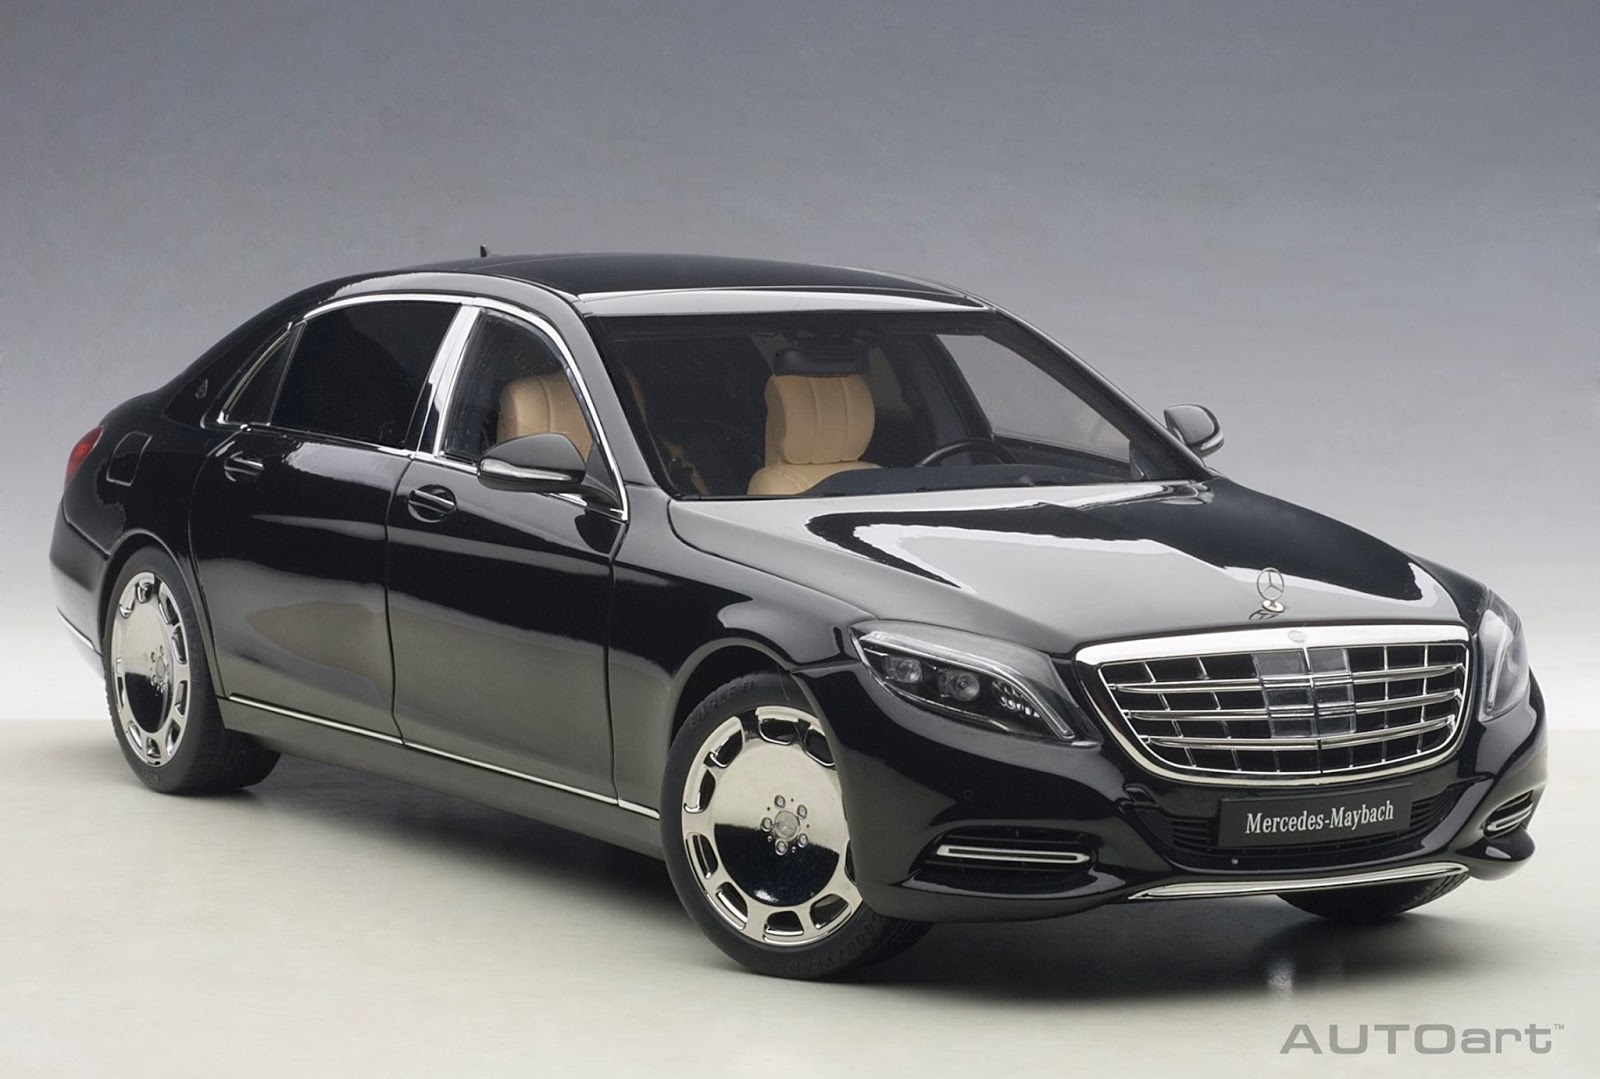 Sd Modelcar Mercedes Maybach S600 Swb 118 Autoart 1 18 Has Just Released A New Photo With The In Black Until It Will Arrive Shops You Can Buy White And Silver